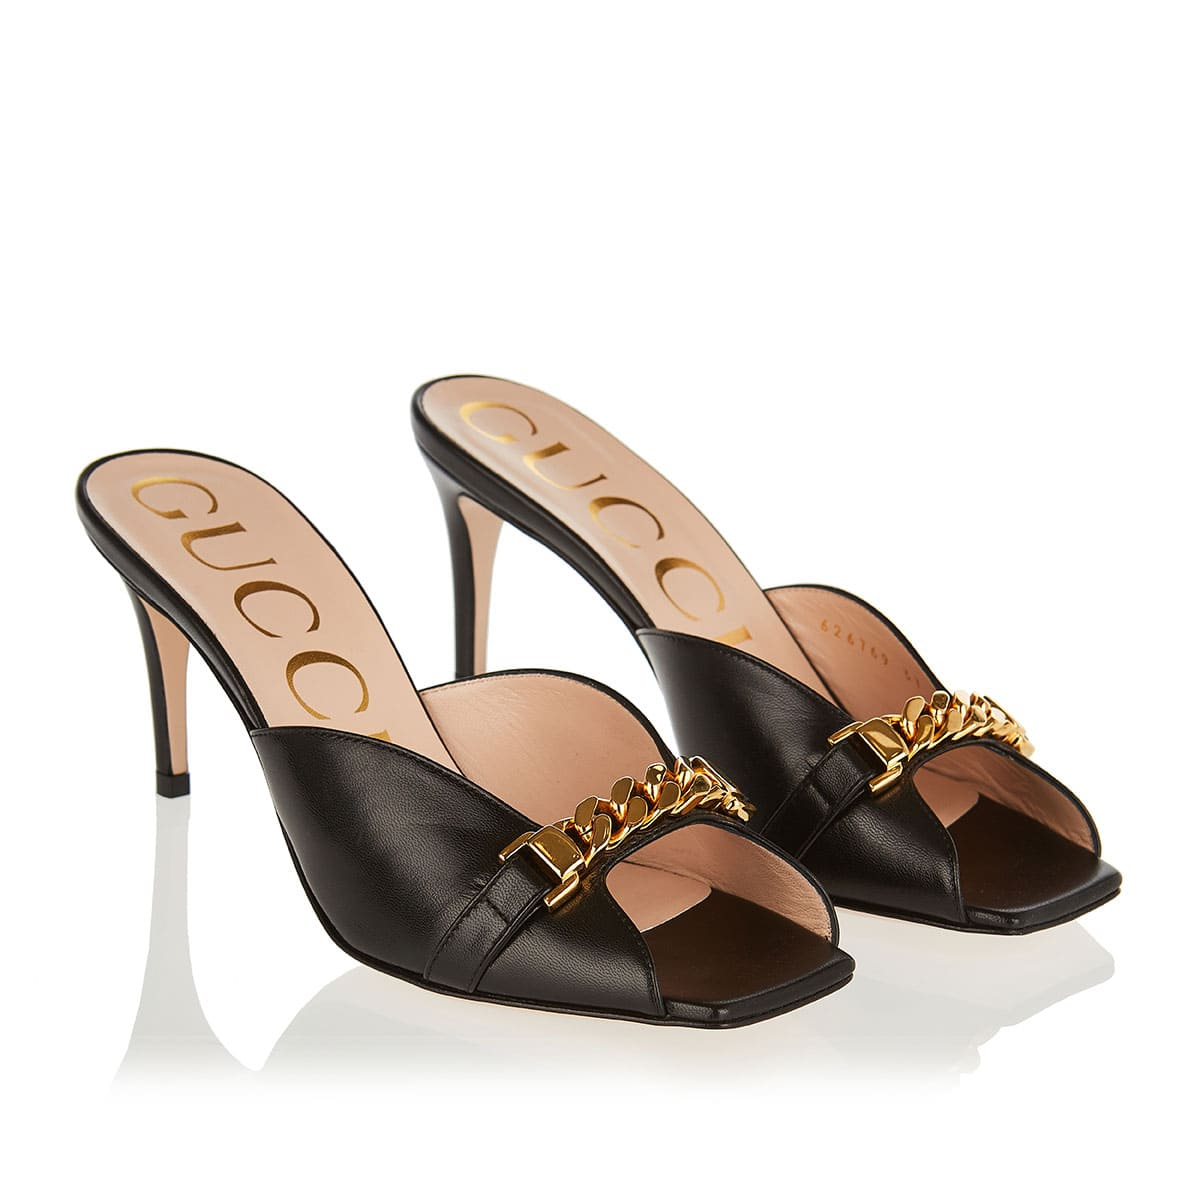 Sylvie chain-embellished mules